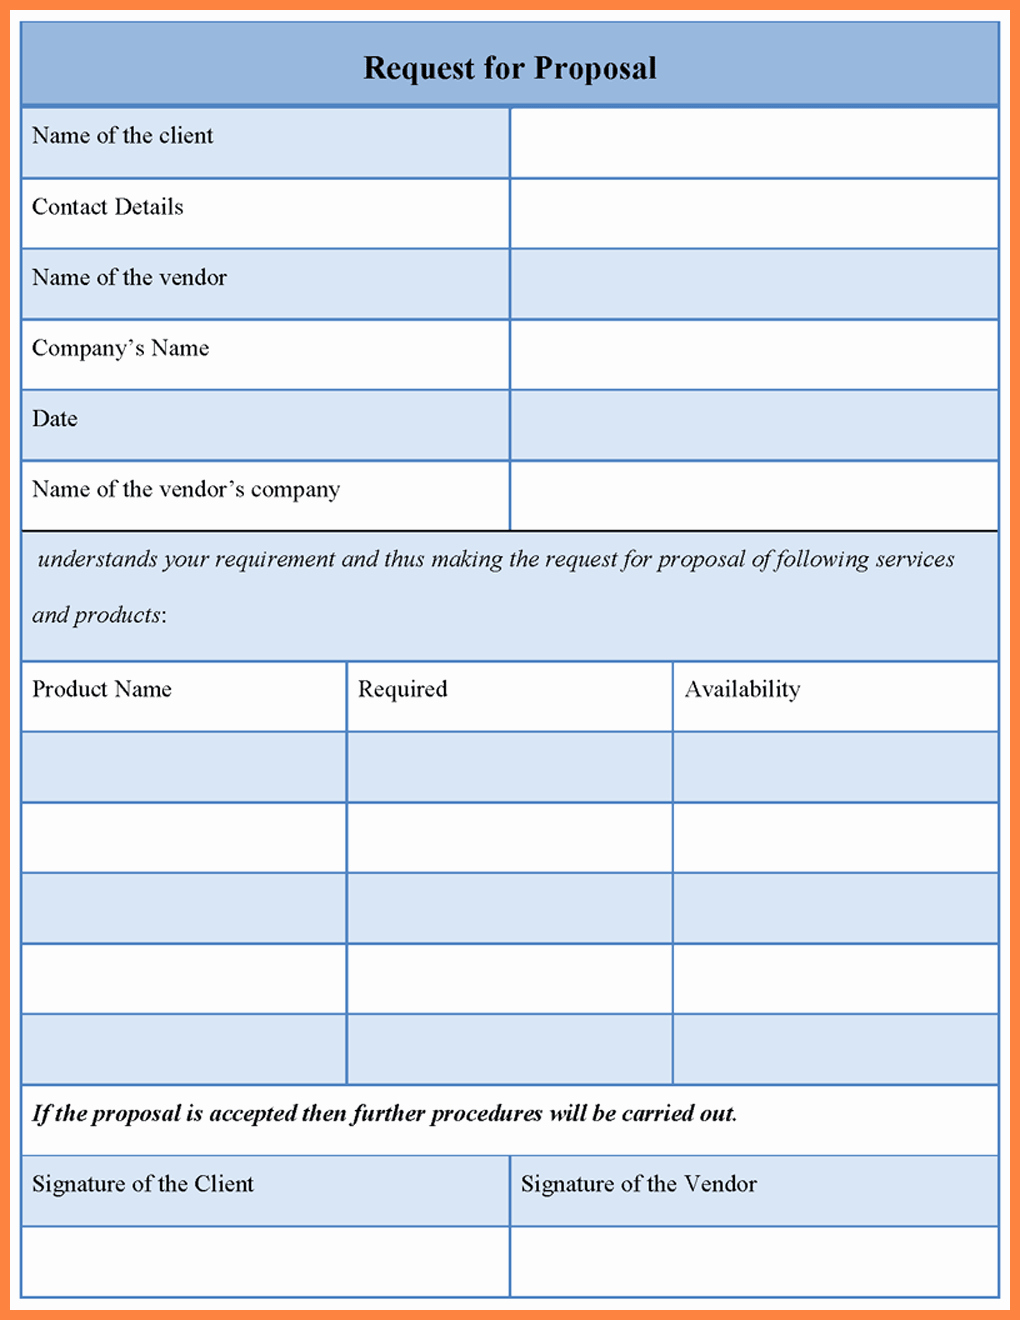 Request for Proposal Template Word Awesome 10 Rfp Template Word